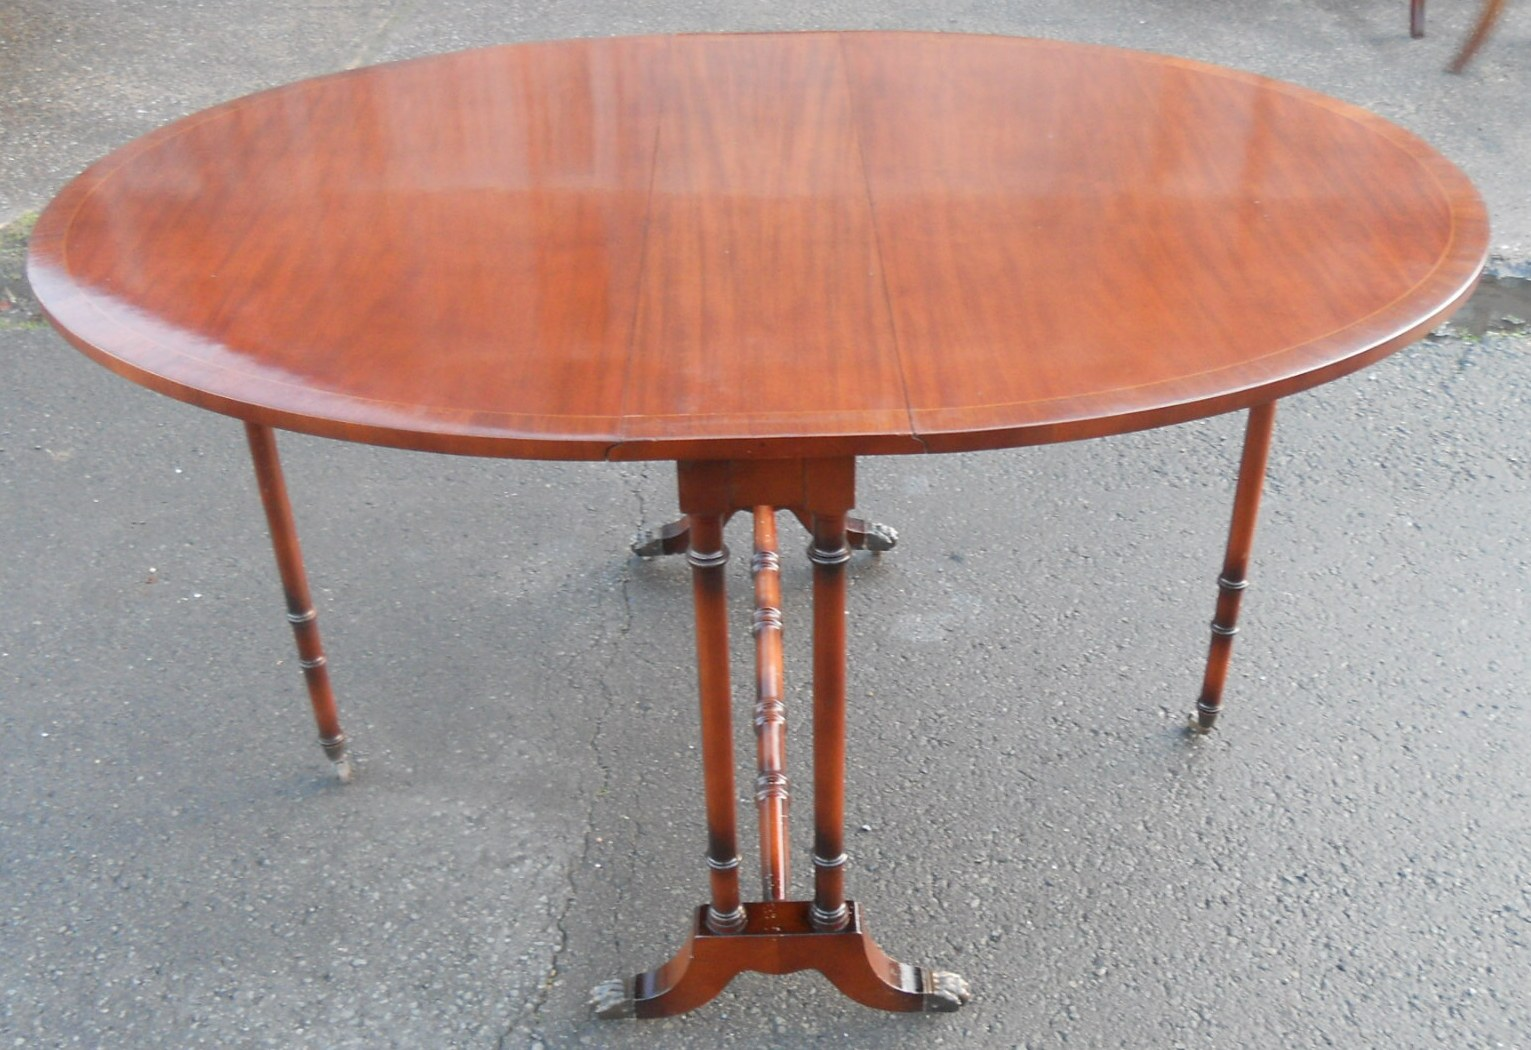 Oval Mahogany Dropleaf Dining Table To Seat Six SOLD